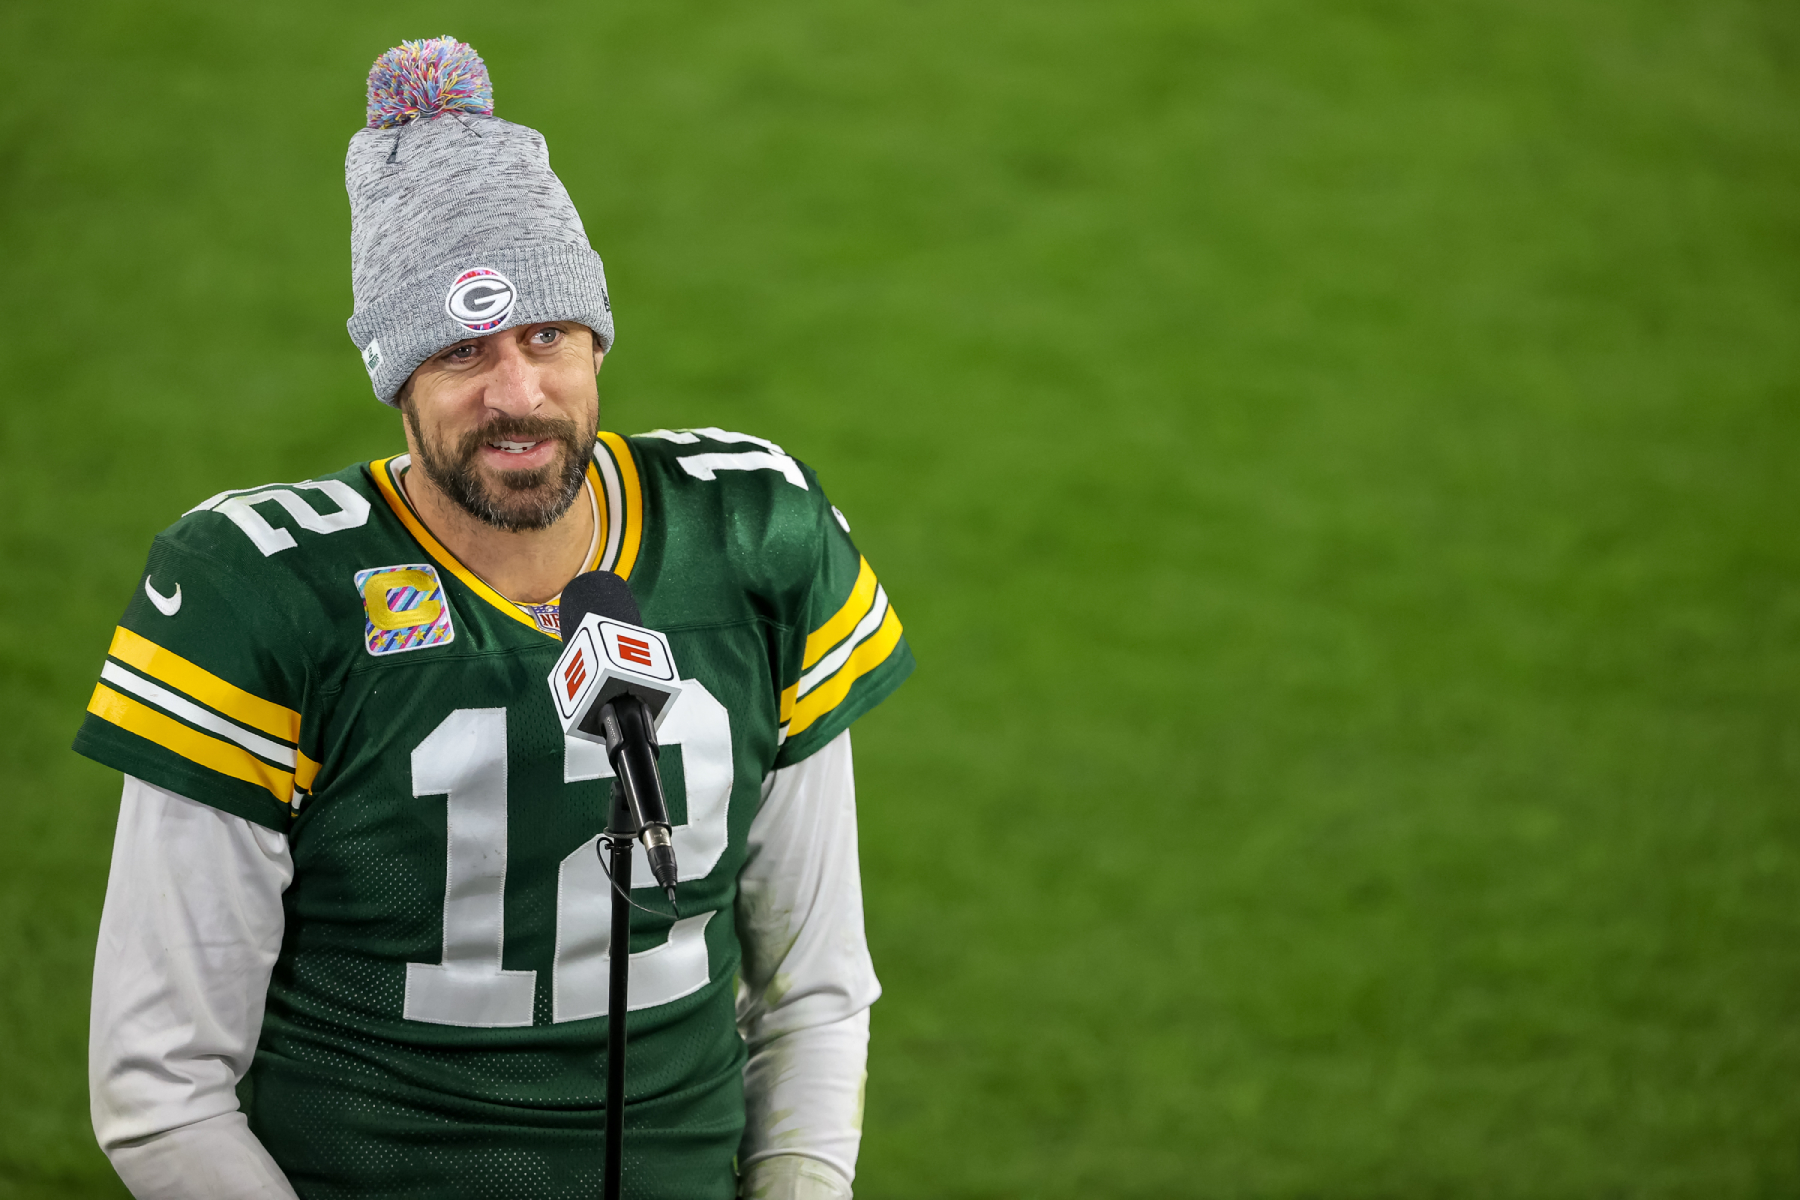 Aaron Rodgers would love to have more weapons. In fact, he tried recruiting a future Hall of Famer to the Packers in Calvin Johnson.